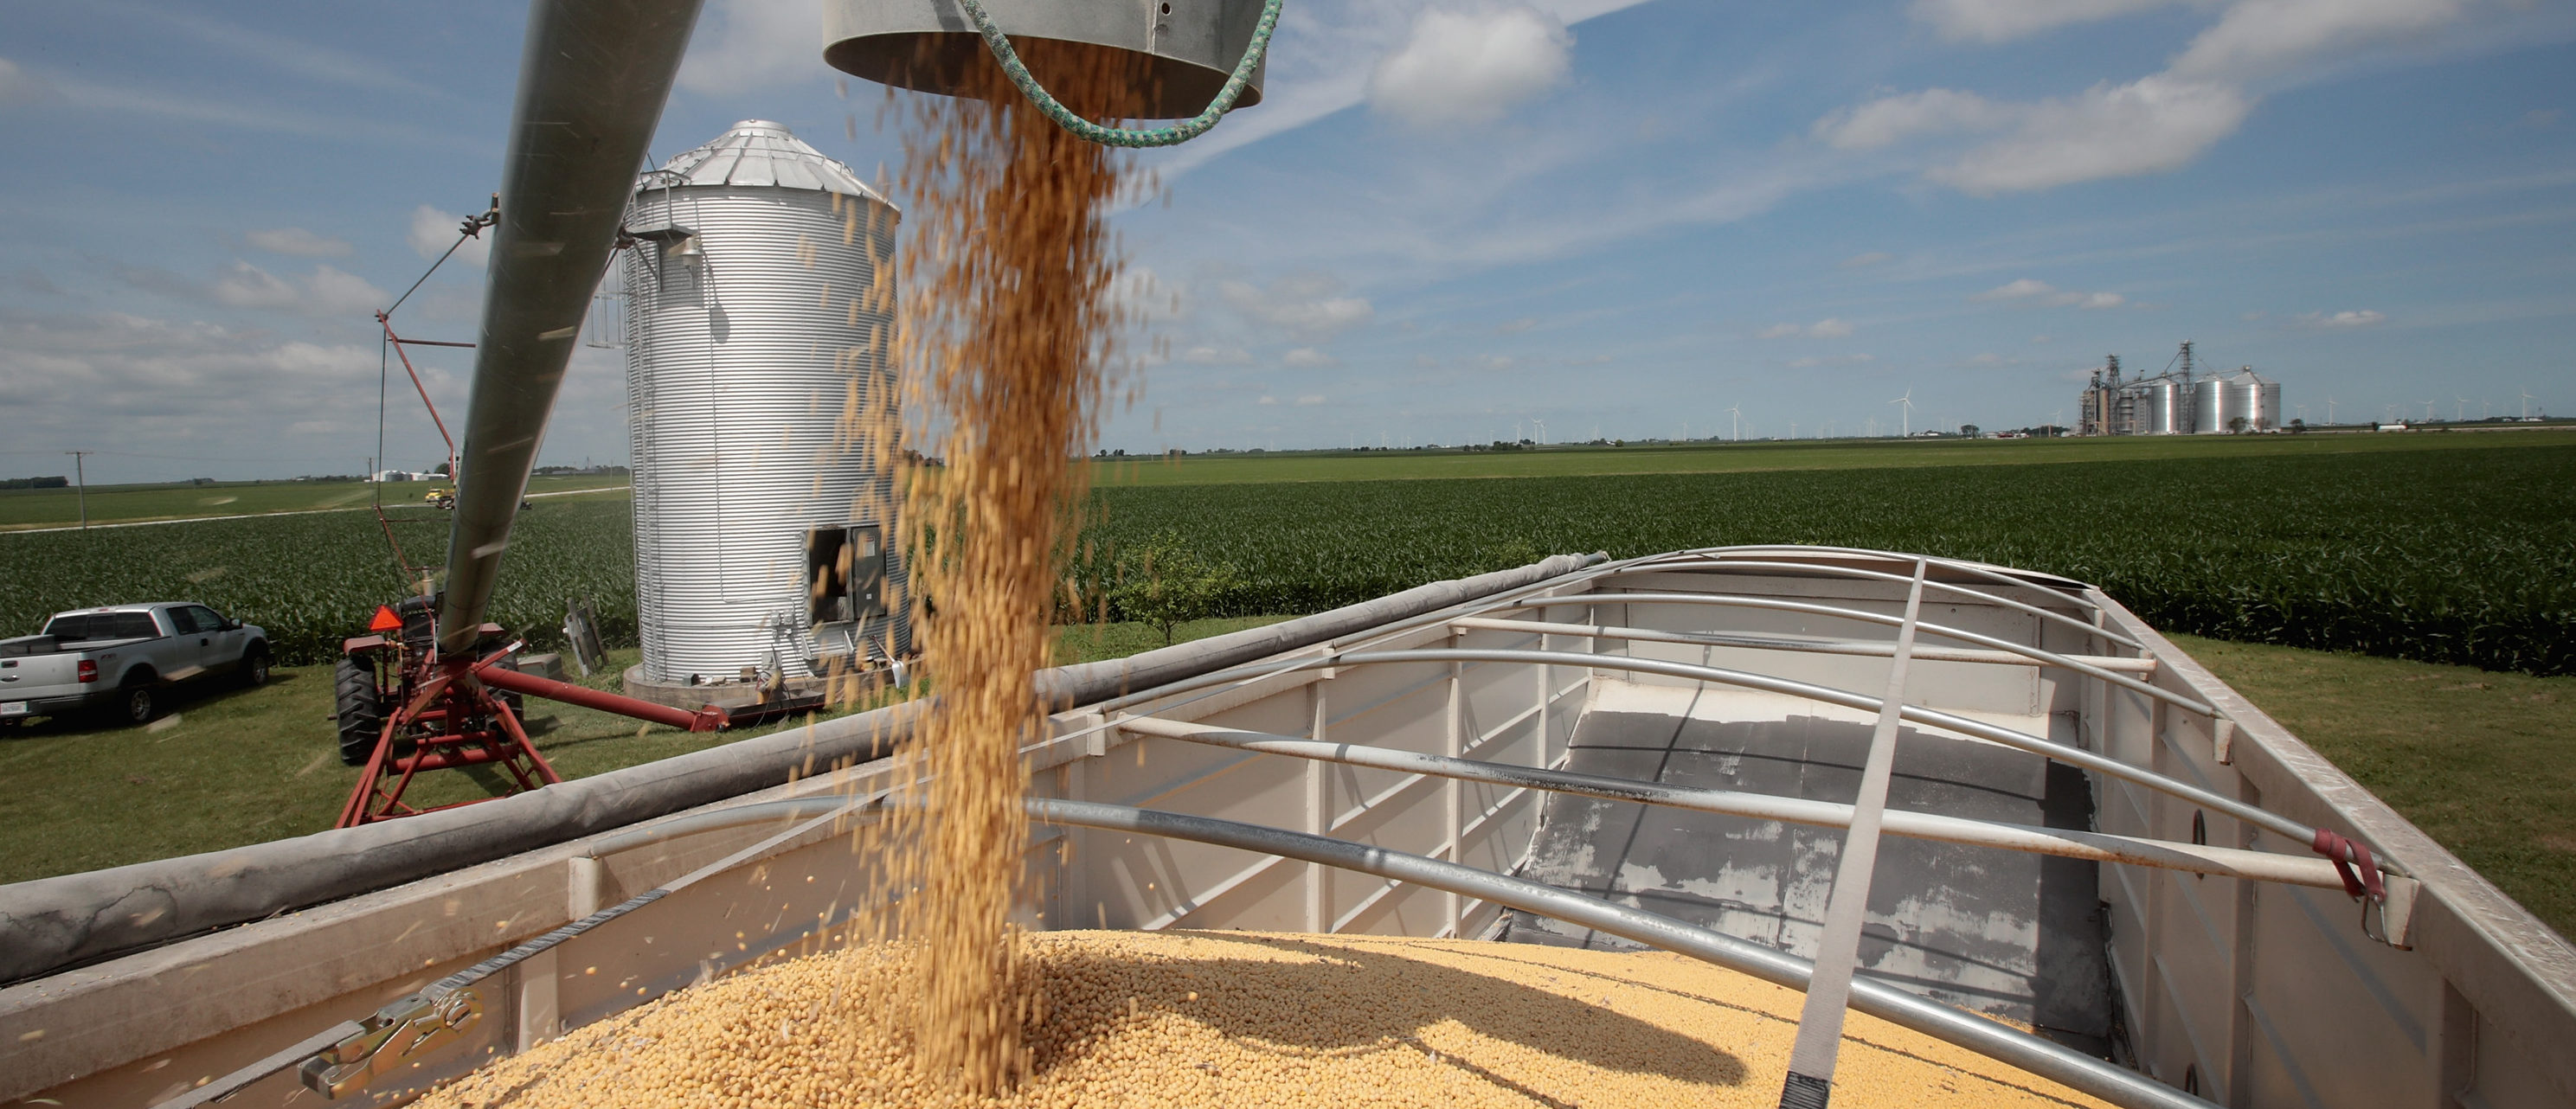 Farmer John Duffy loads soybeans from his grain bin onto a truck before taking them to a grain elevator on June 13, 2018 in Dwight, Illinois. U.S. Soybean futures plunged today with renewed fears that China could hit U.S. soybeans with retaliatory tariffs if the Trump administration follows through with threatened tariffs on Chinese goods. (Scott Olson/Getty Images)